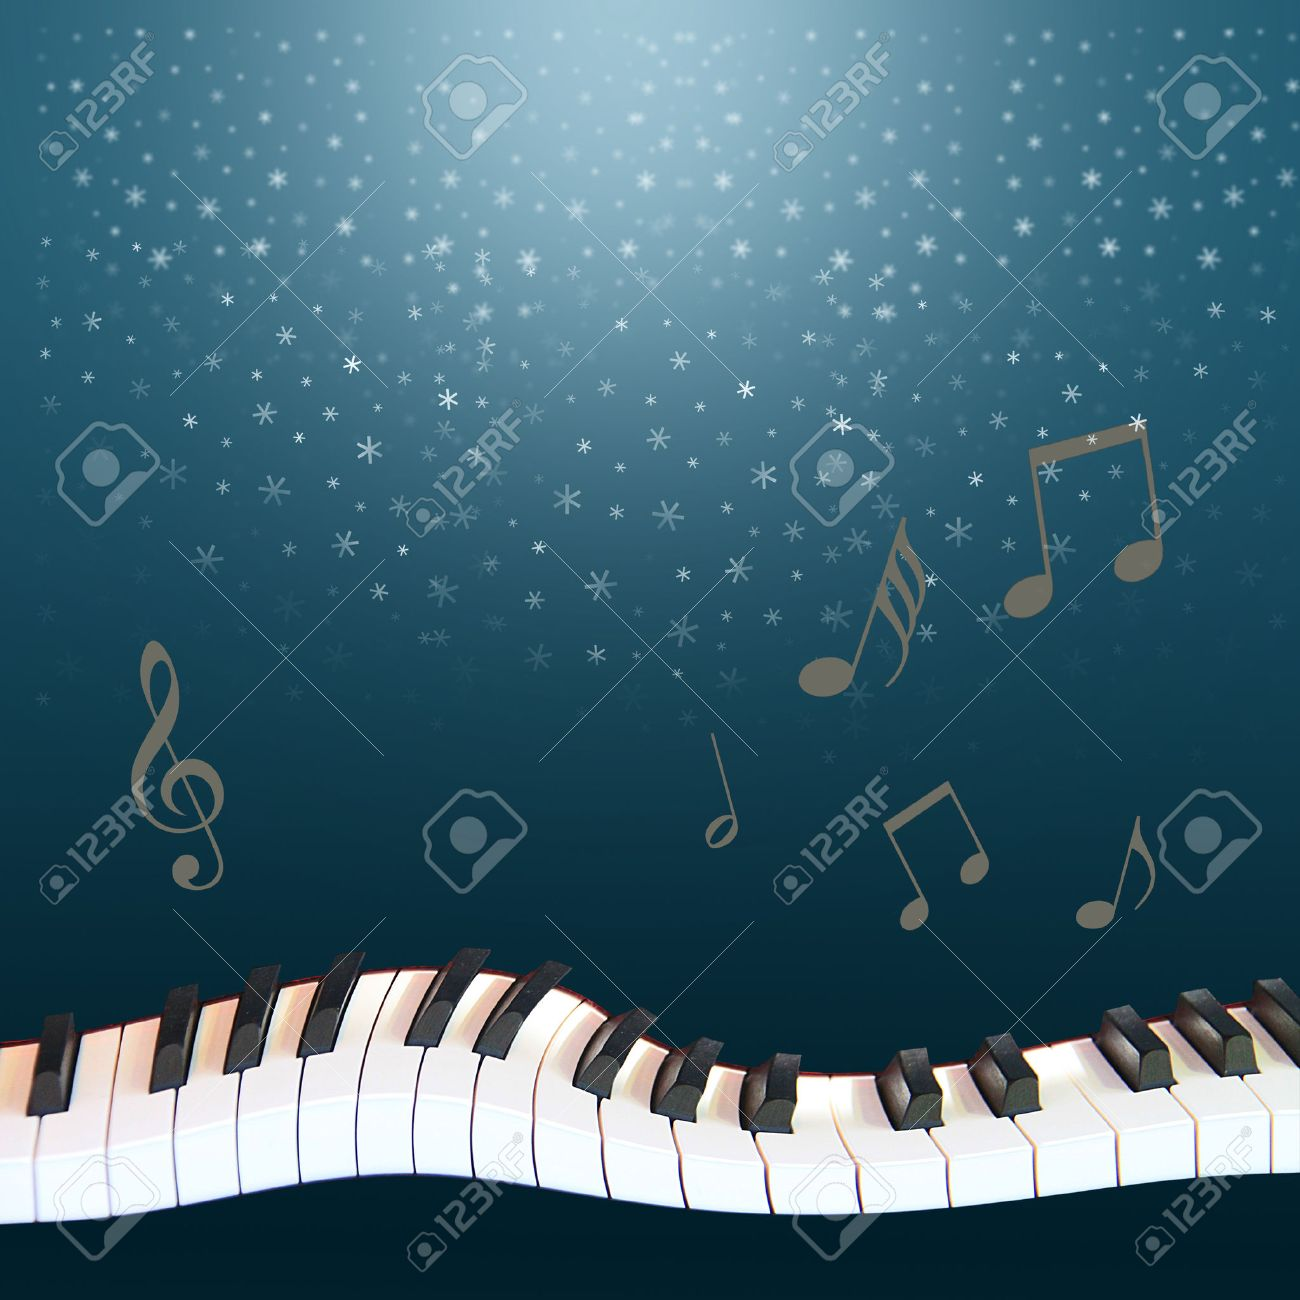 a musical winter night  snow fallen from the dark blue sky, a warped piano and notes soaring Stock Photo - 29867728